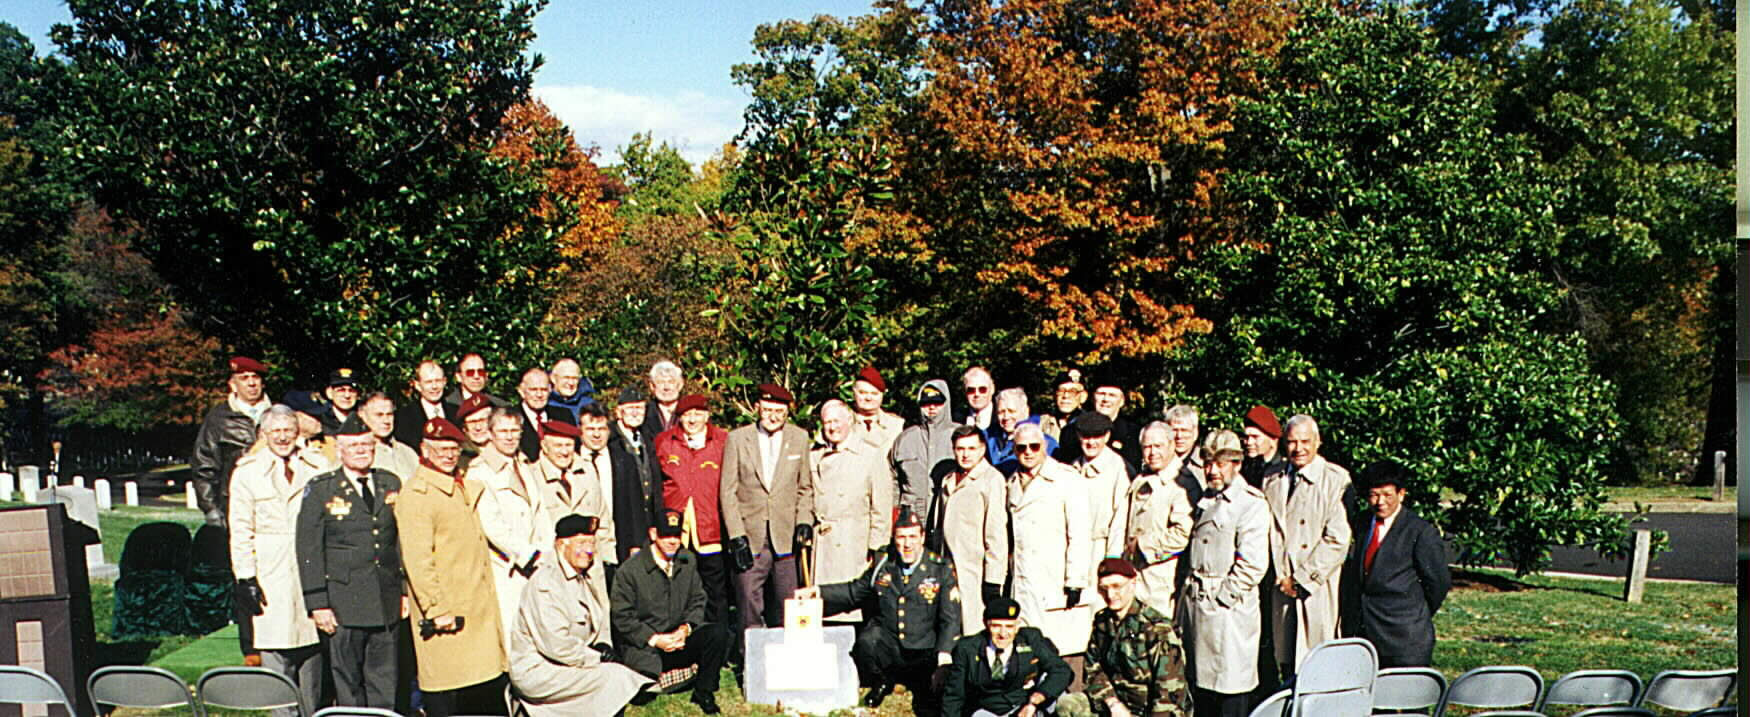 Vietnamese Rangers Memorial Dedication PHOTO